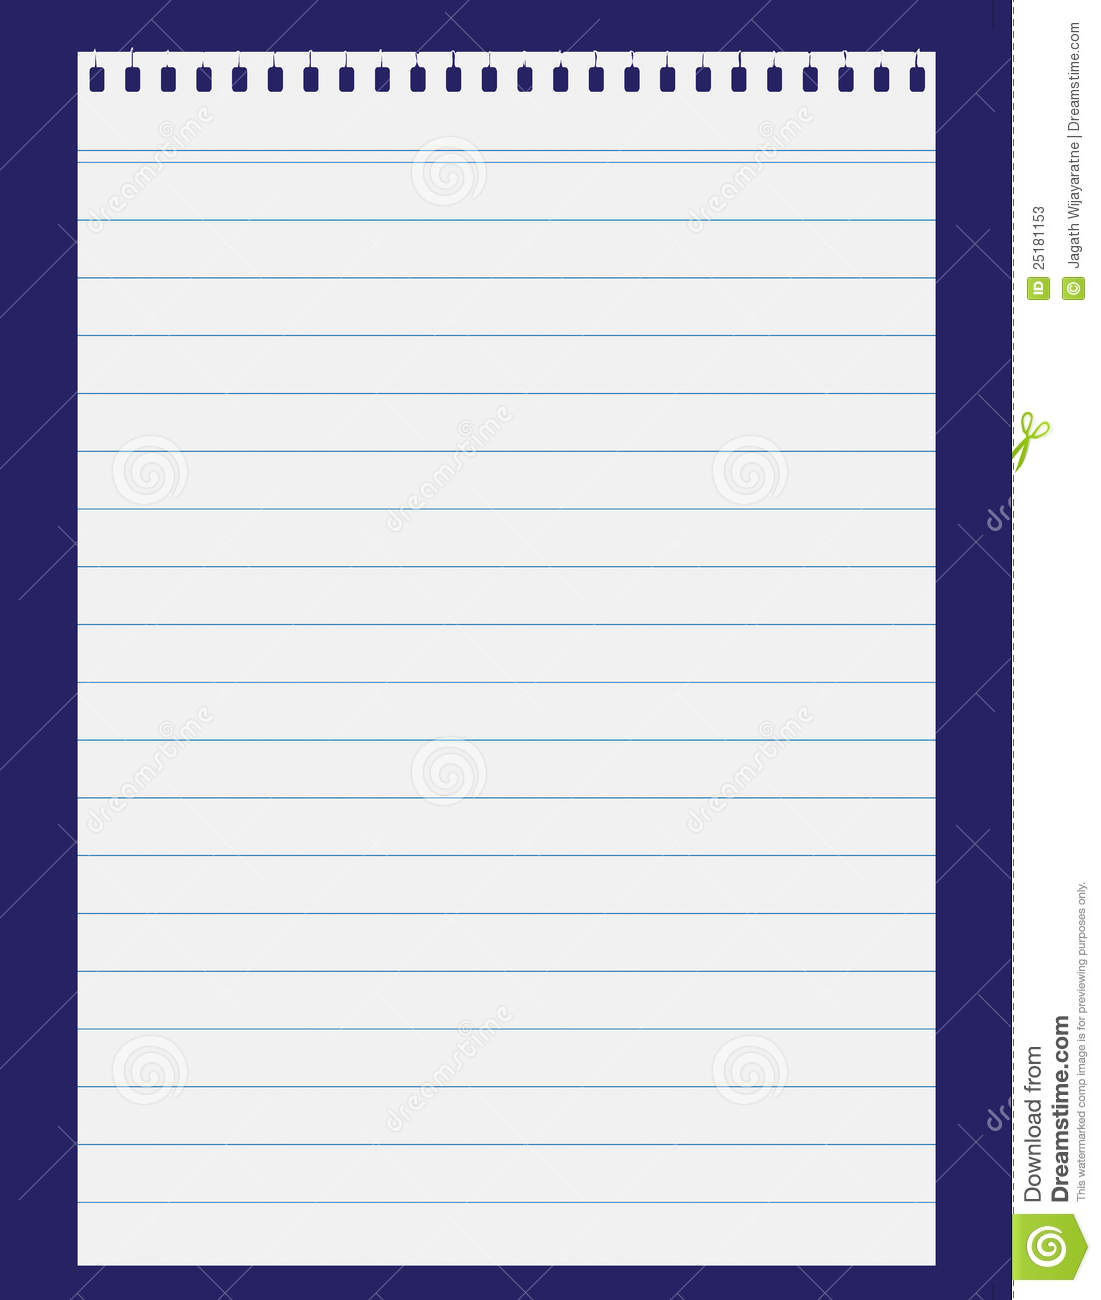 Lined Paper On Blue Backgroung Stock Photos - Image: 25181153